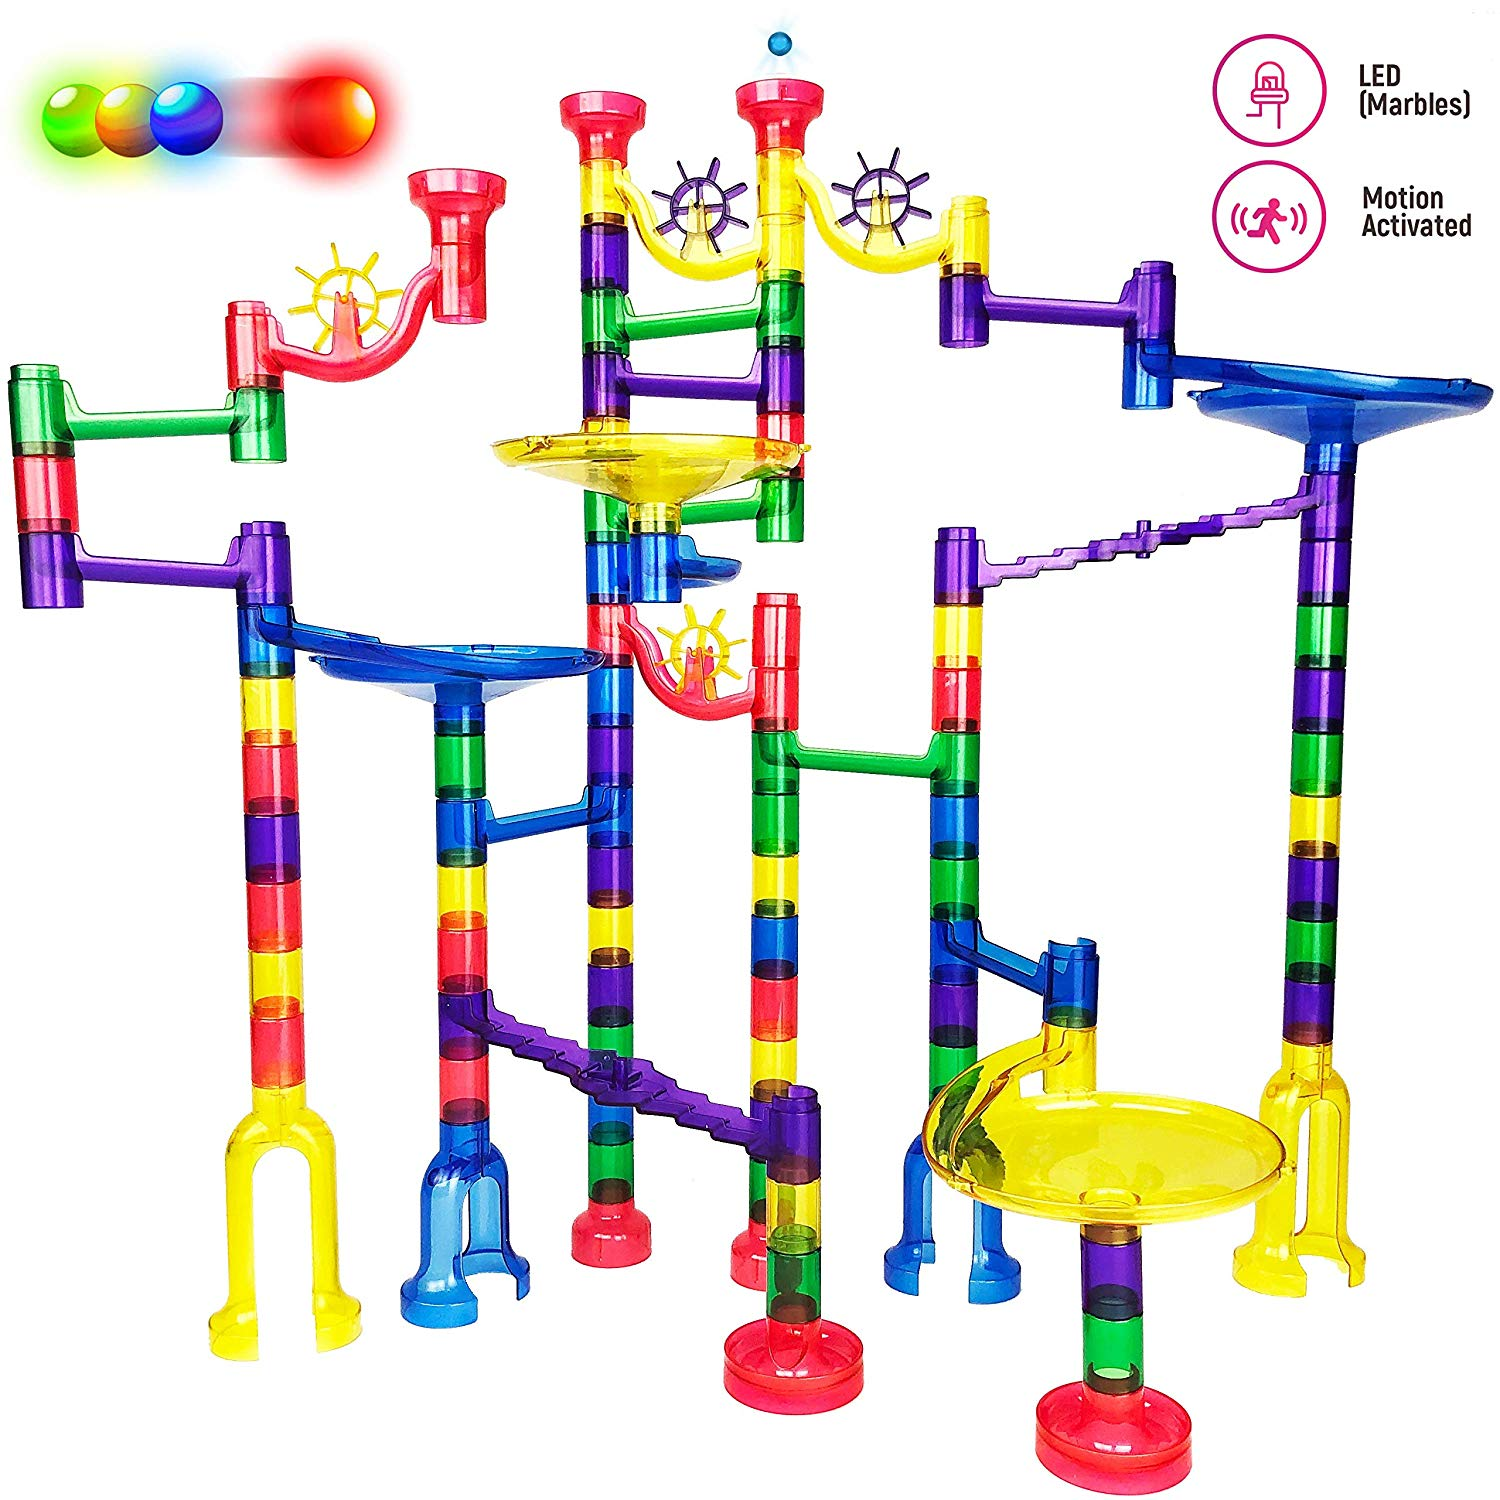 marble run set - stem toys - best toys for 3 year olds.jpg